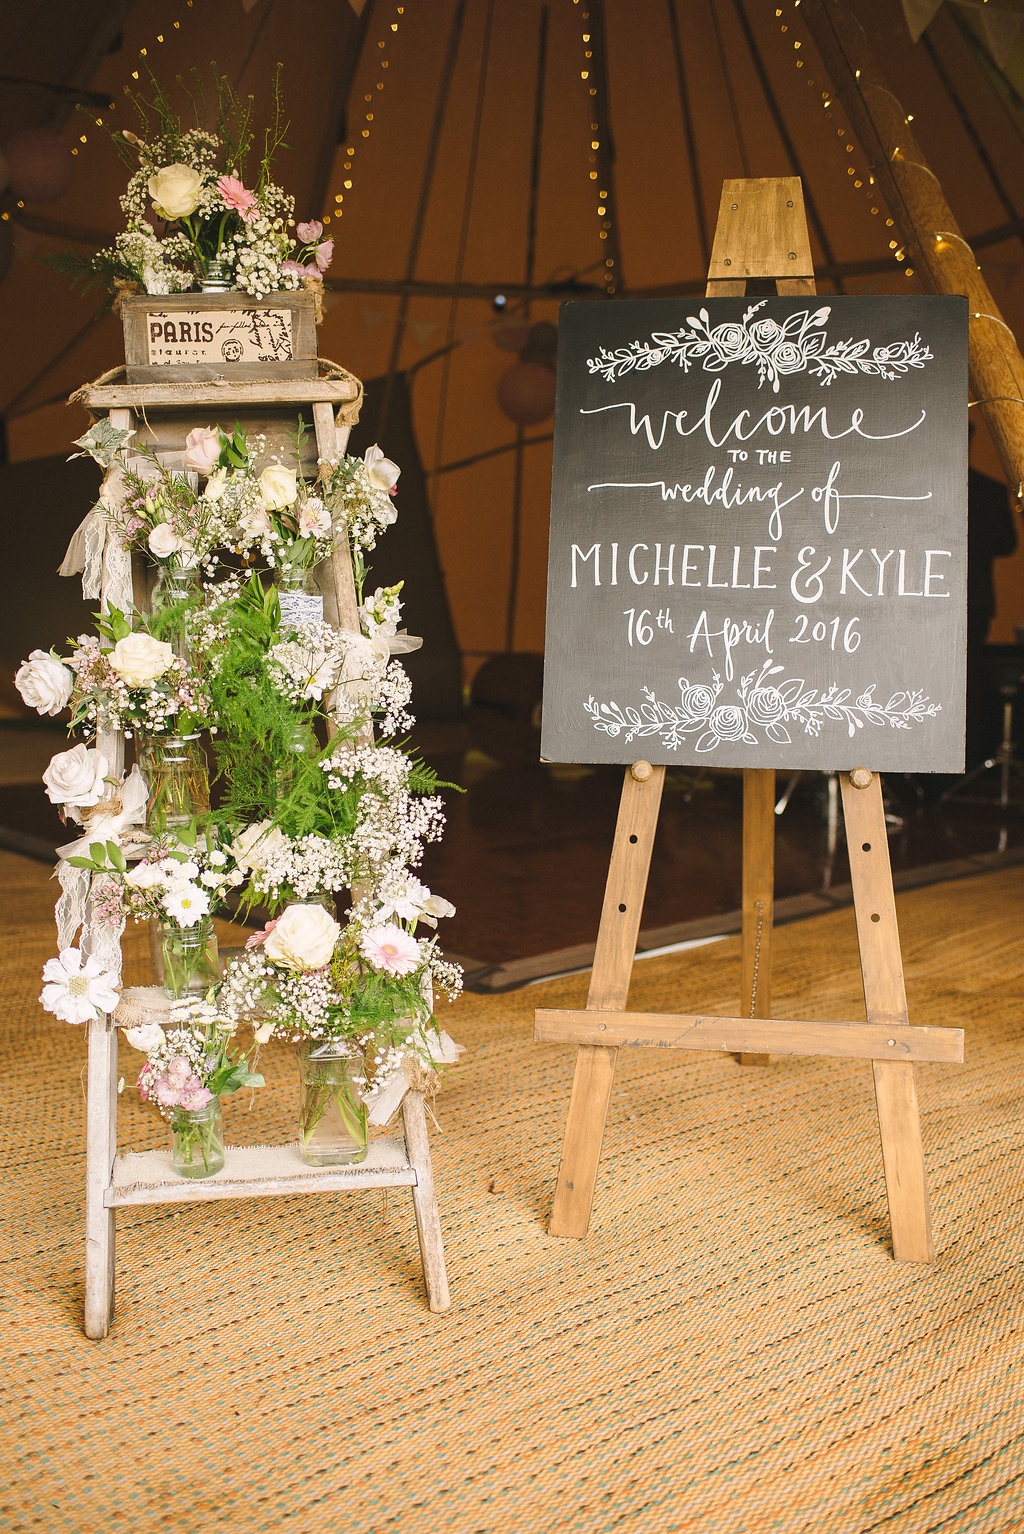 Rustic Welcome Board for Tipi Wedding